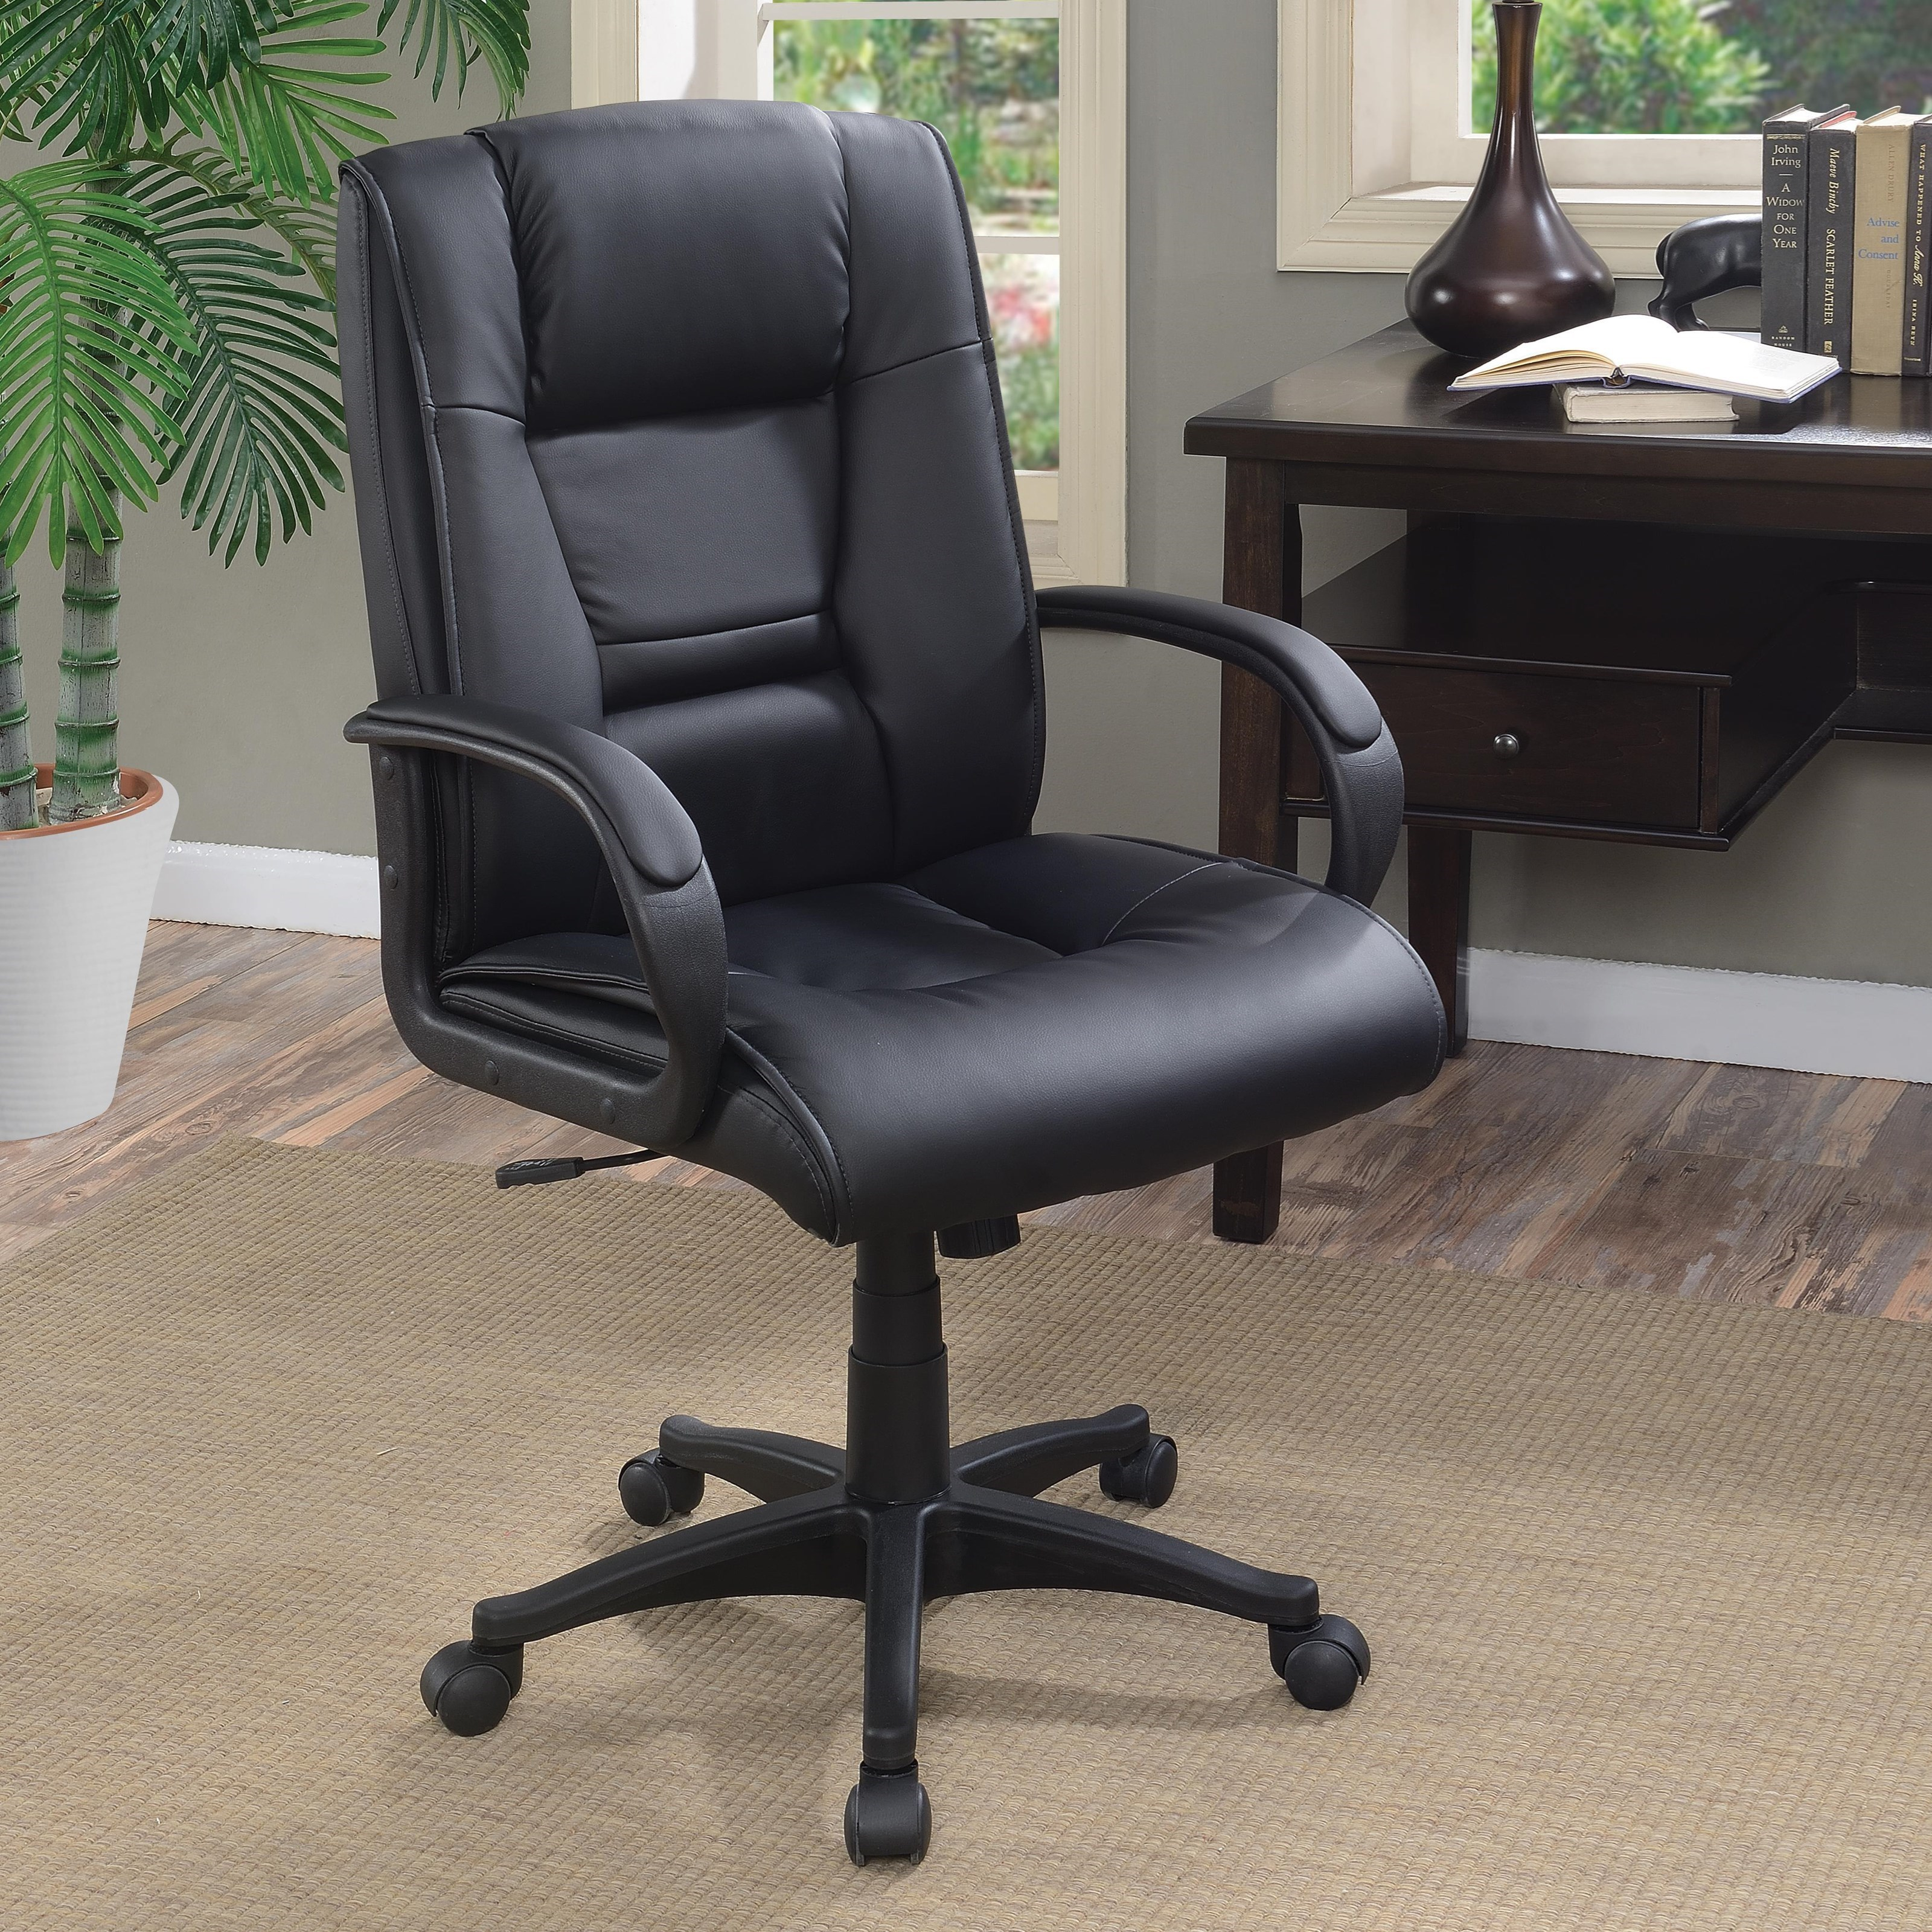 Coaster Office Chairs 881059 Black Leatherette Office